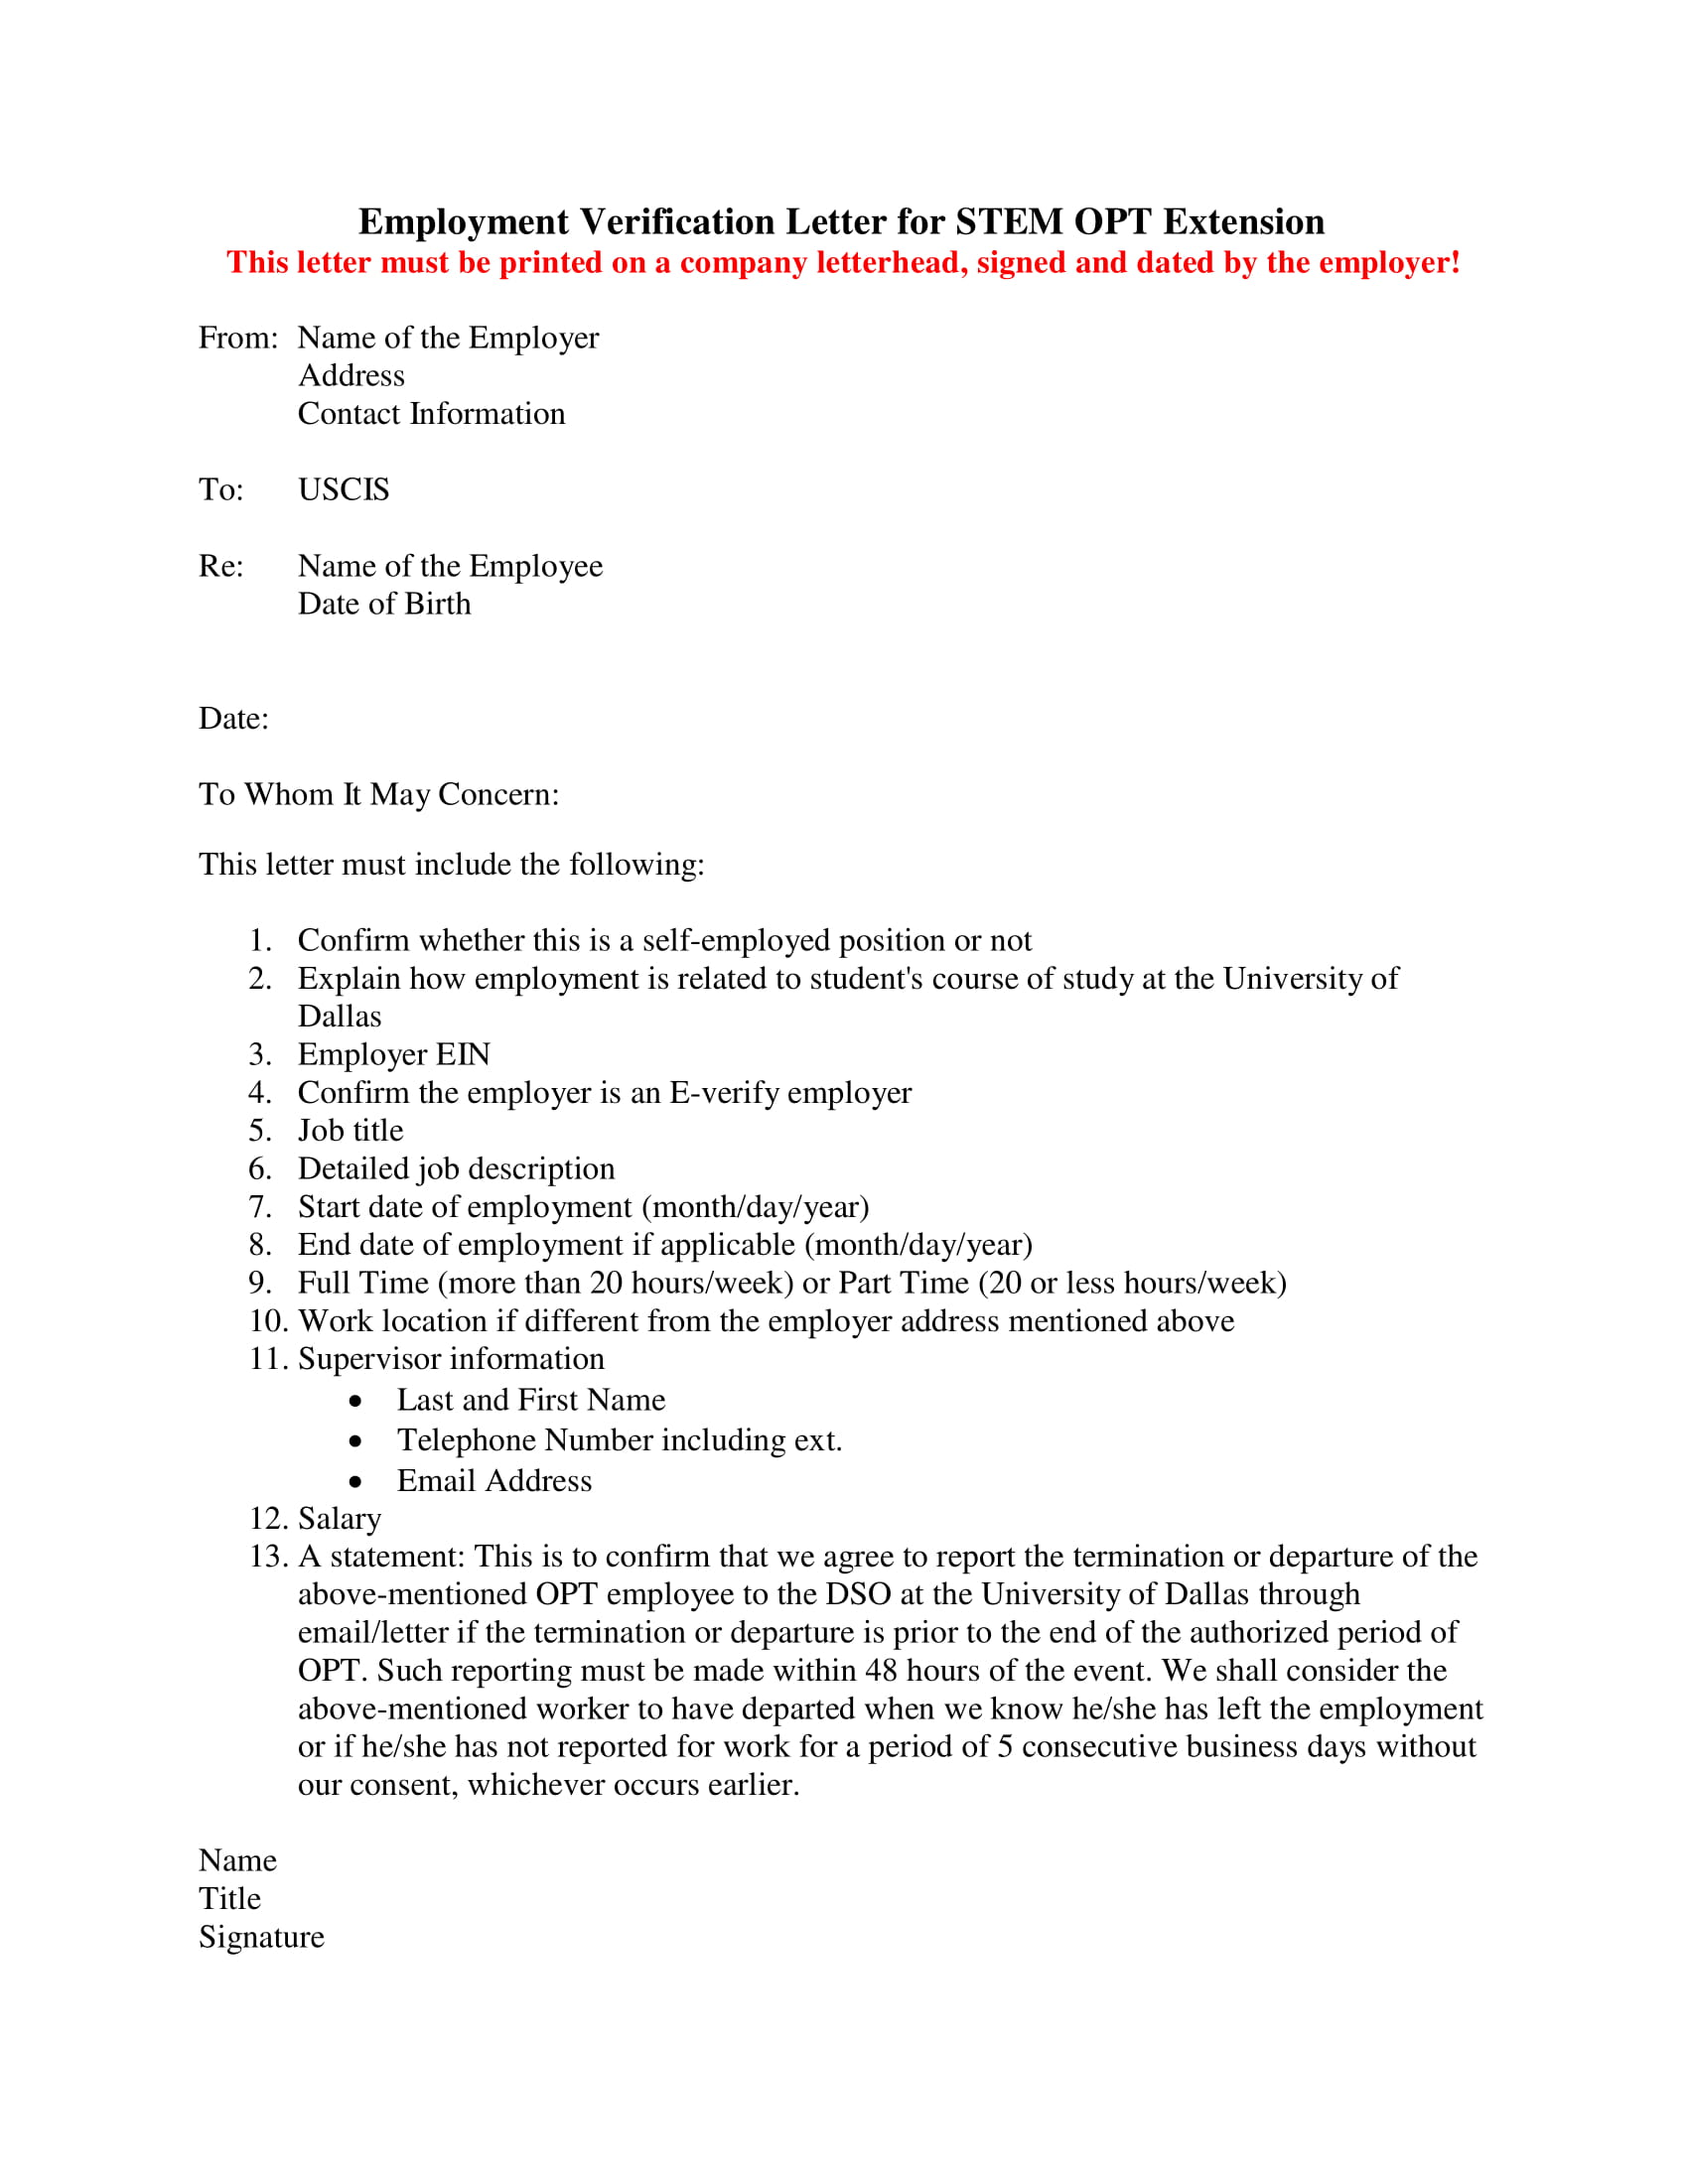 basic employment verification letter example